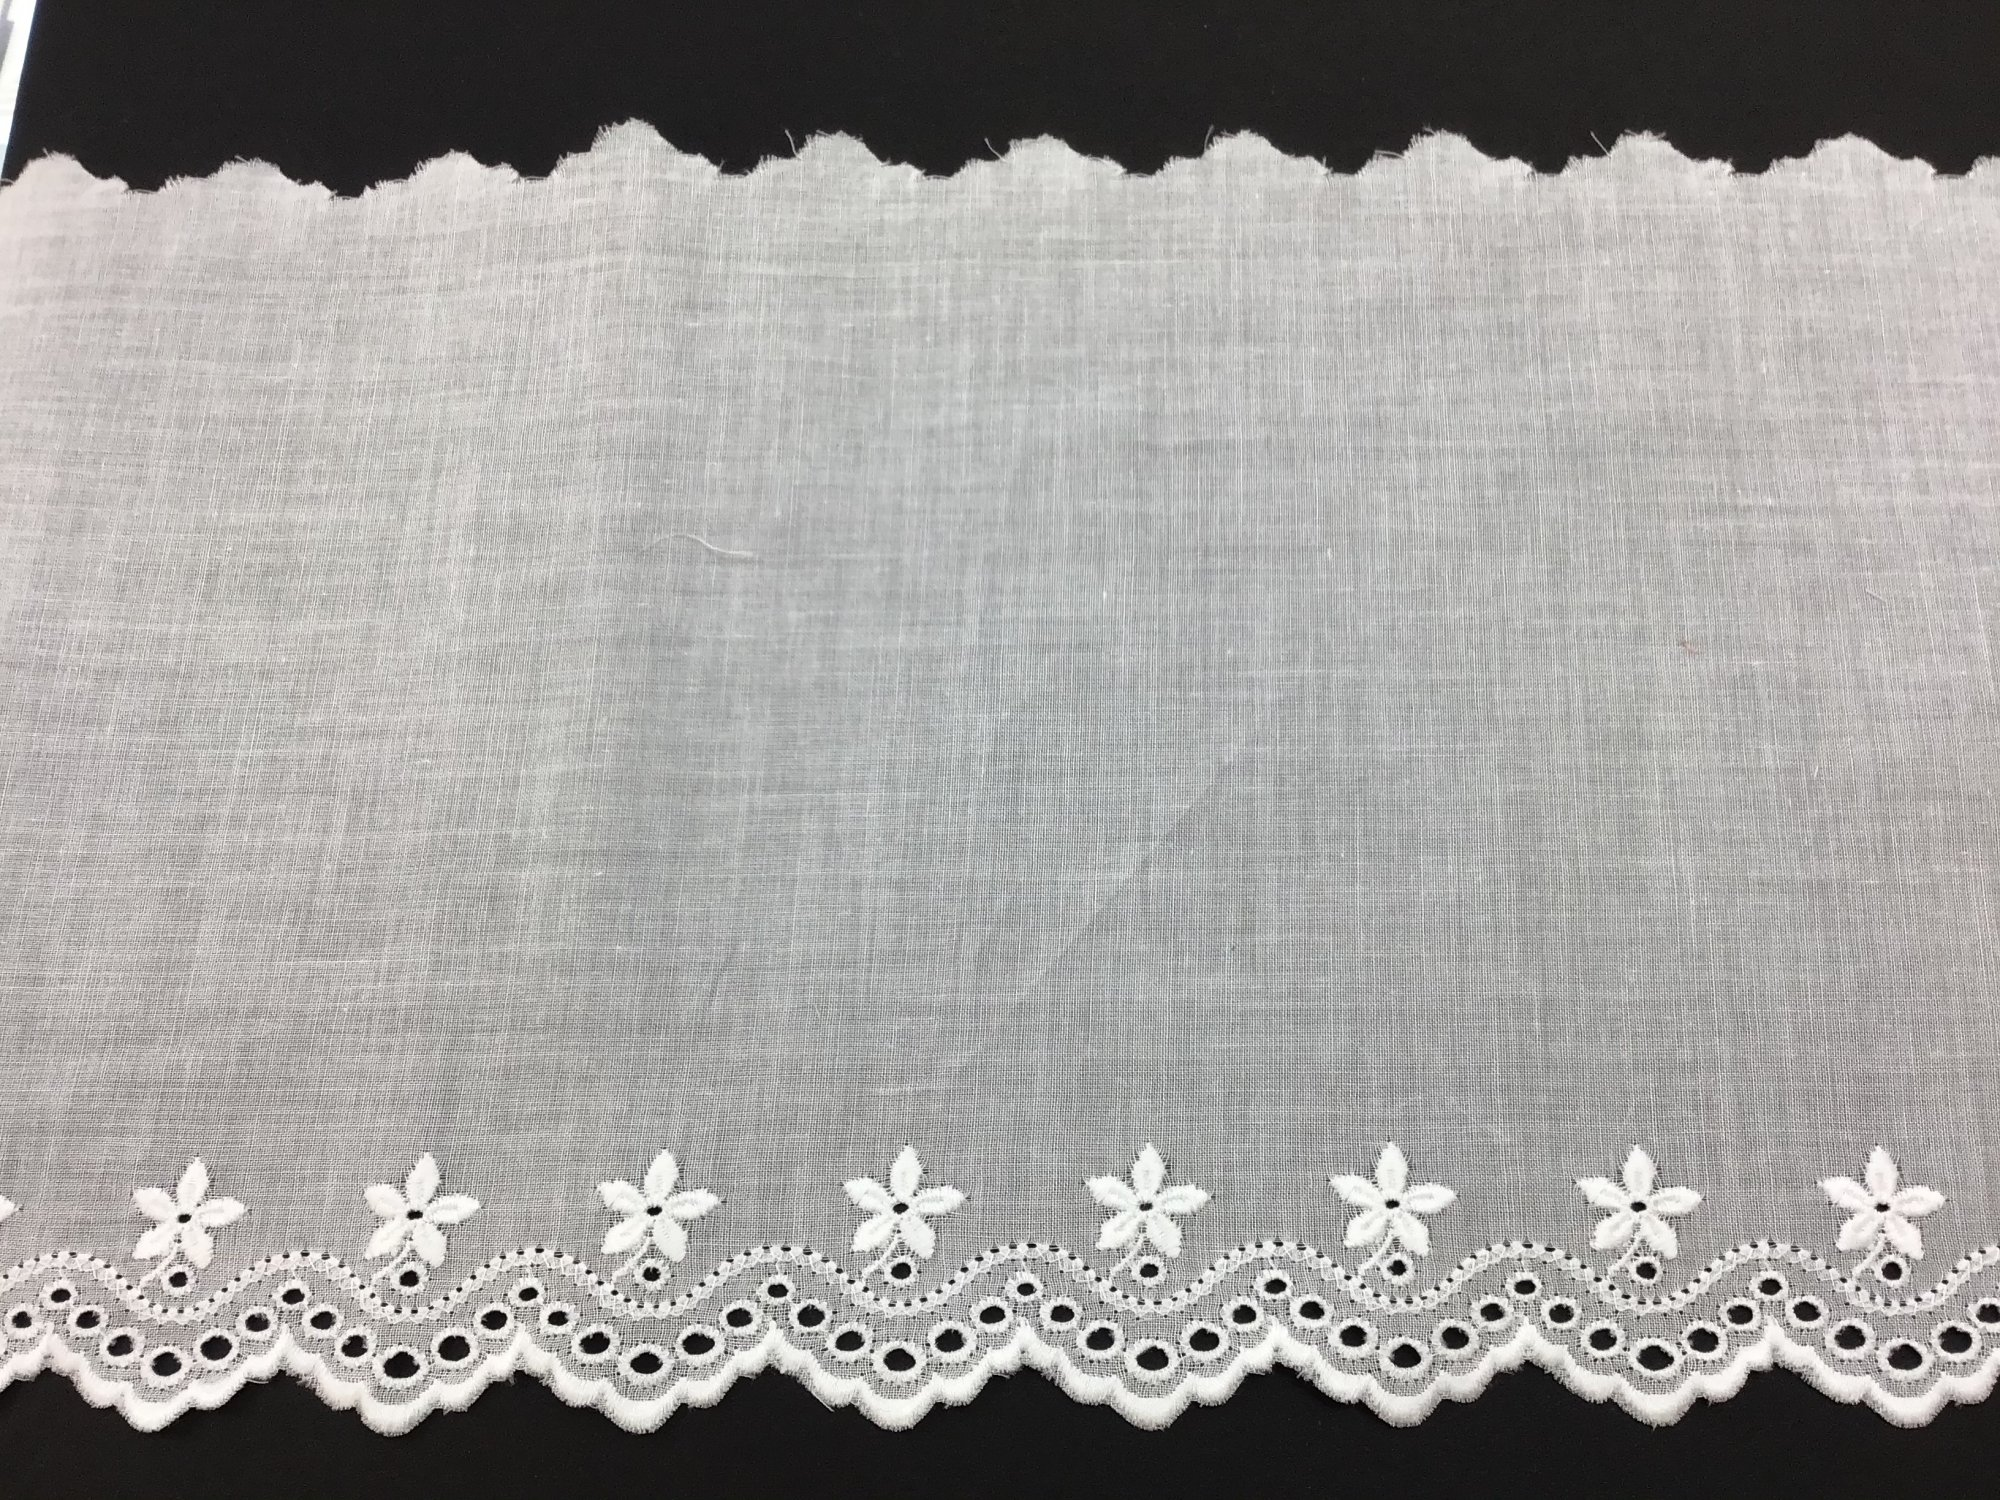 Swiss Embroidered Edging 7 Inch White 68024-14